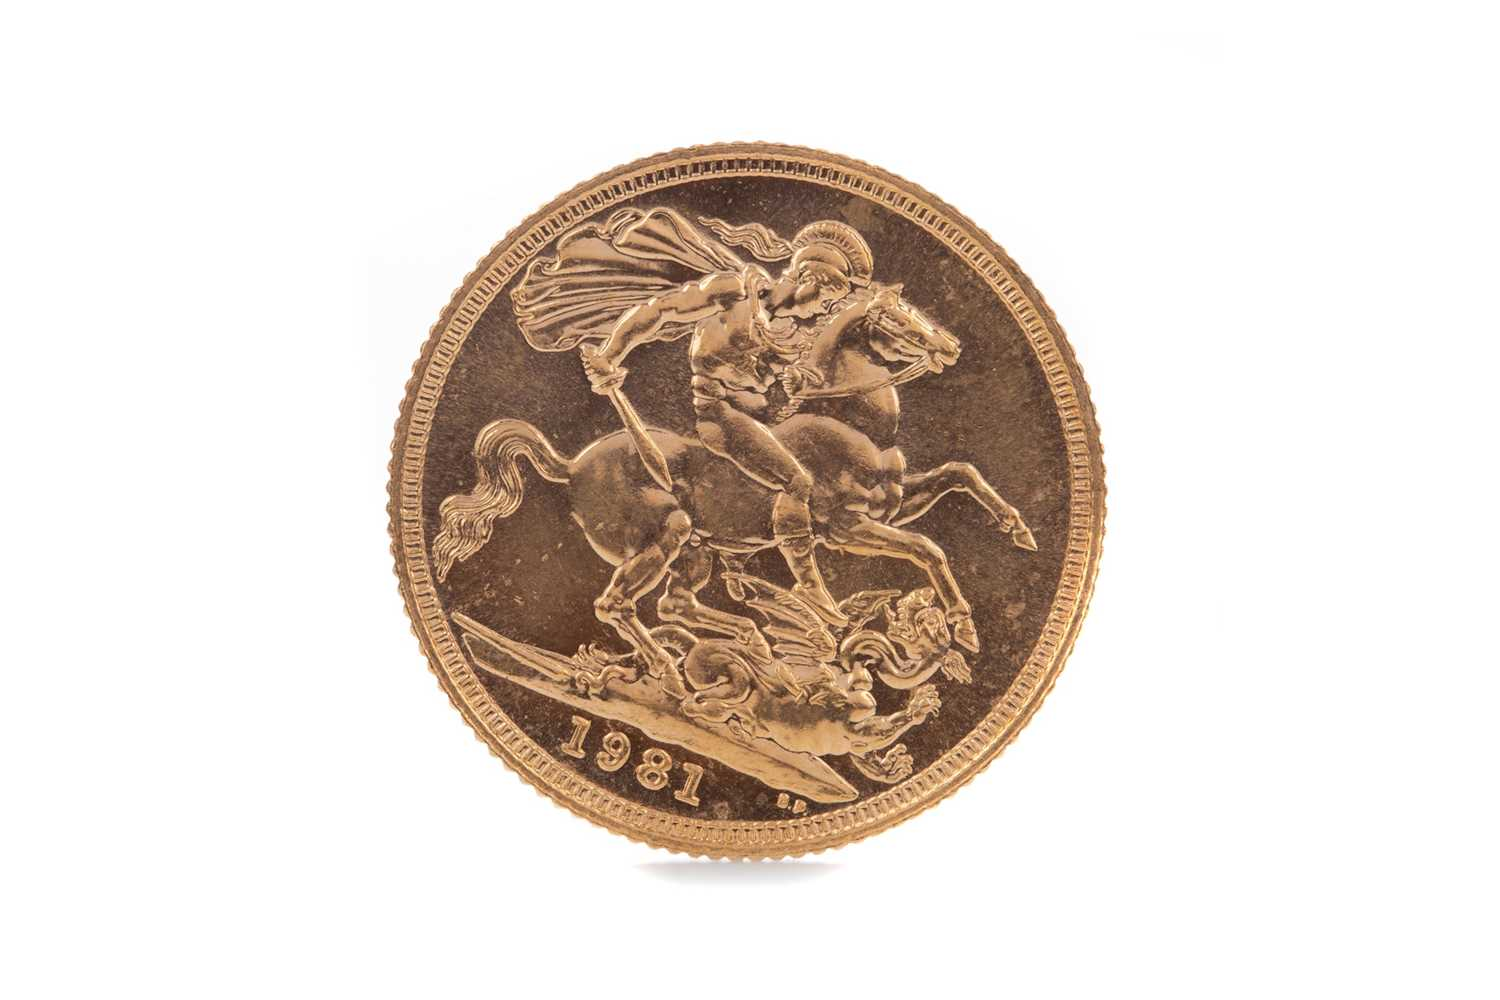 Lot 34 - AN ELIZABETH II GOLD SOVEREIGN DATED 1981